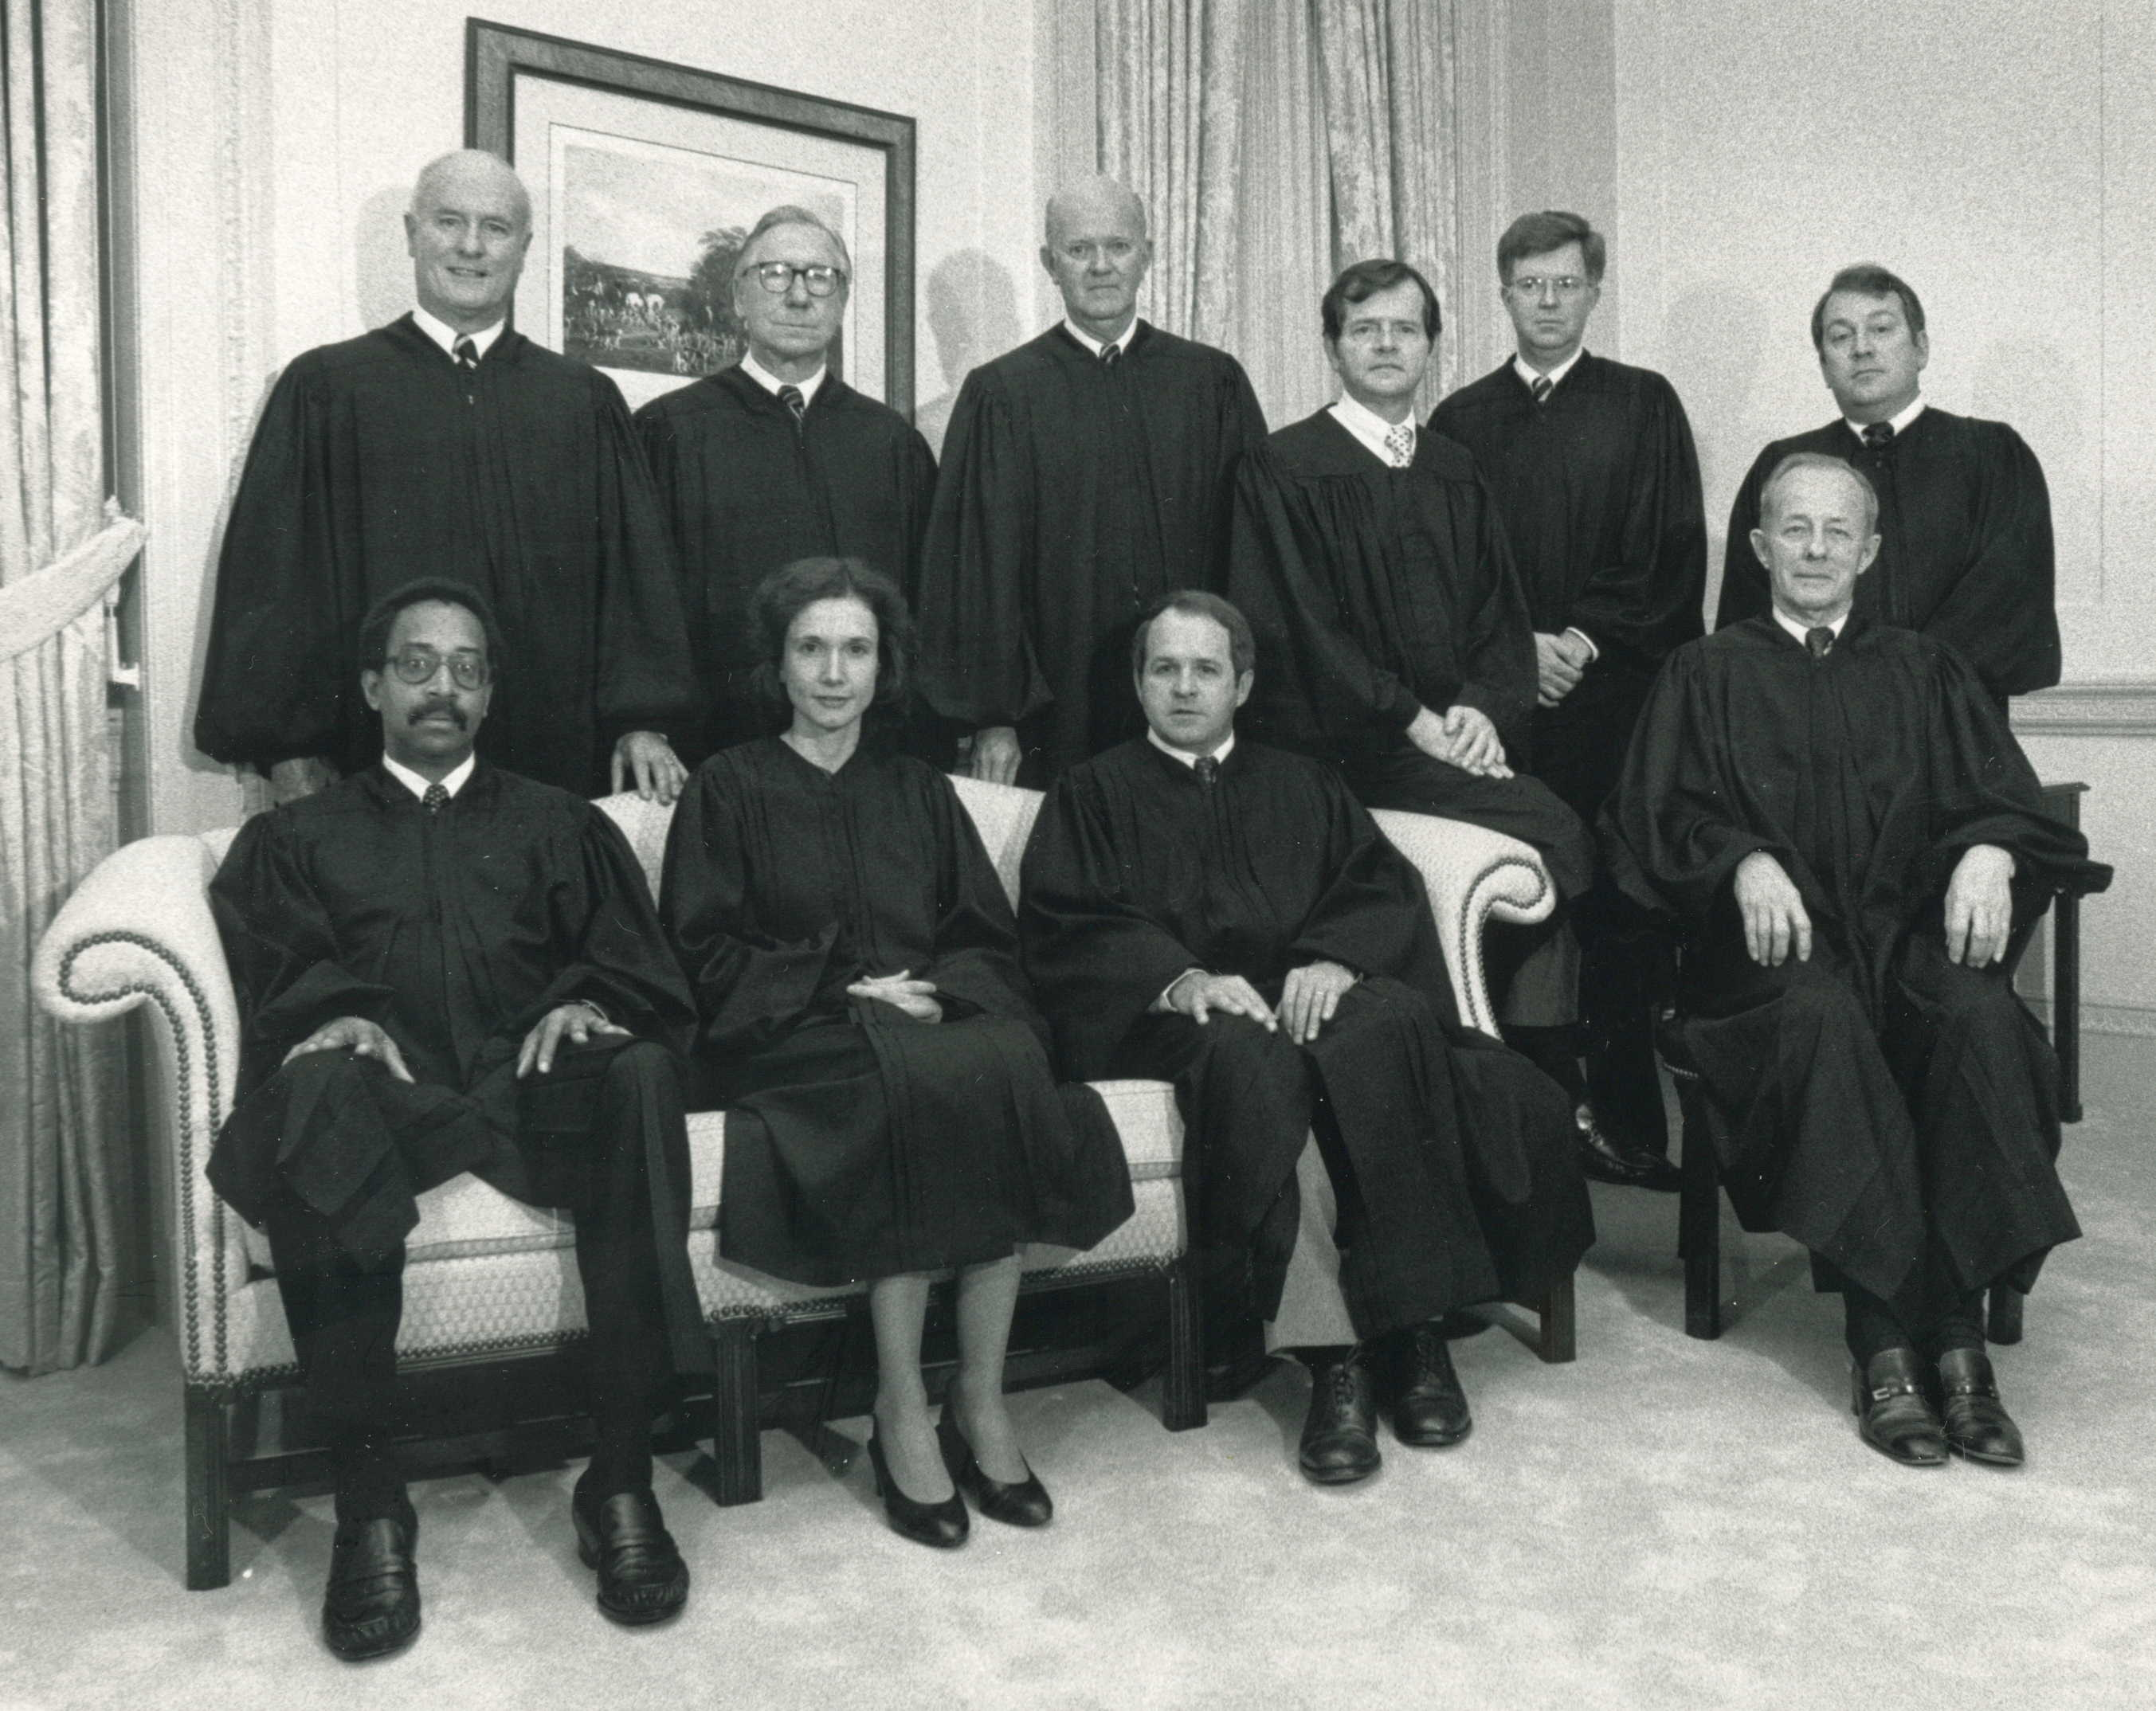 Court of Appeals of Virginia, 1985. Front row, left to right: Hon. James W. Benton, Jr., Hon. Barbara Milano Keenan, Hon. Sam W. Coleman, III; Back row, left to right: Hon. Charles H. Duff Hon. Joseph E. Baker, Hon. William H. Hodges, Hon. Bernard G. Barrow, Hon. Norman K. Moon, and Hon. E. Ballard Baker (Chief Judge).